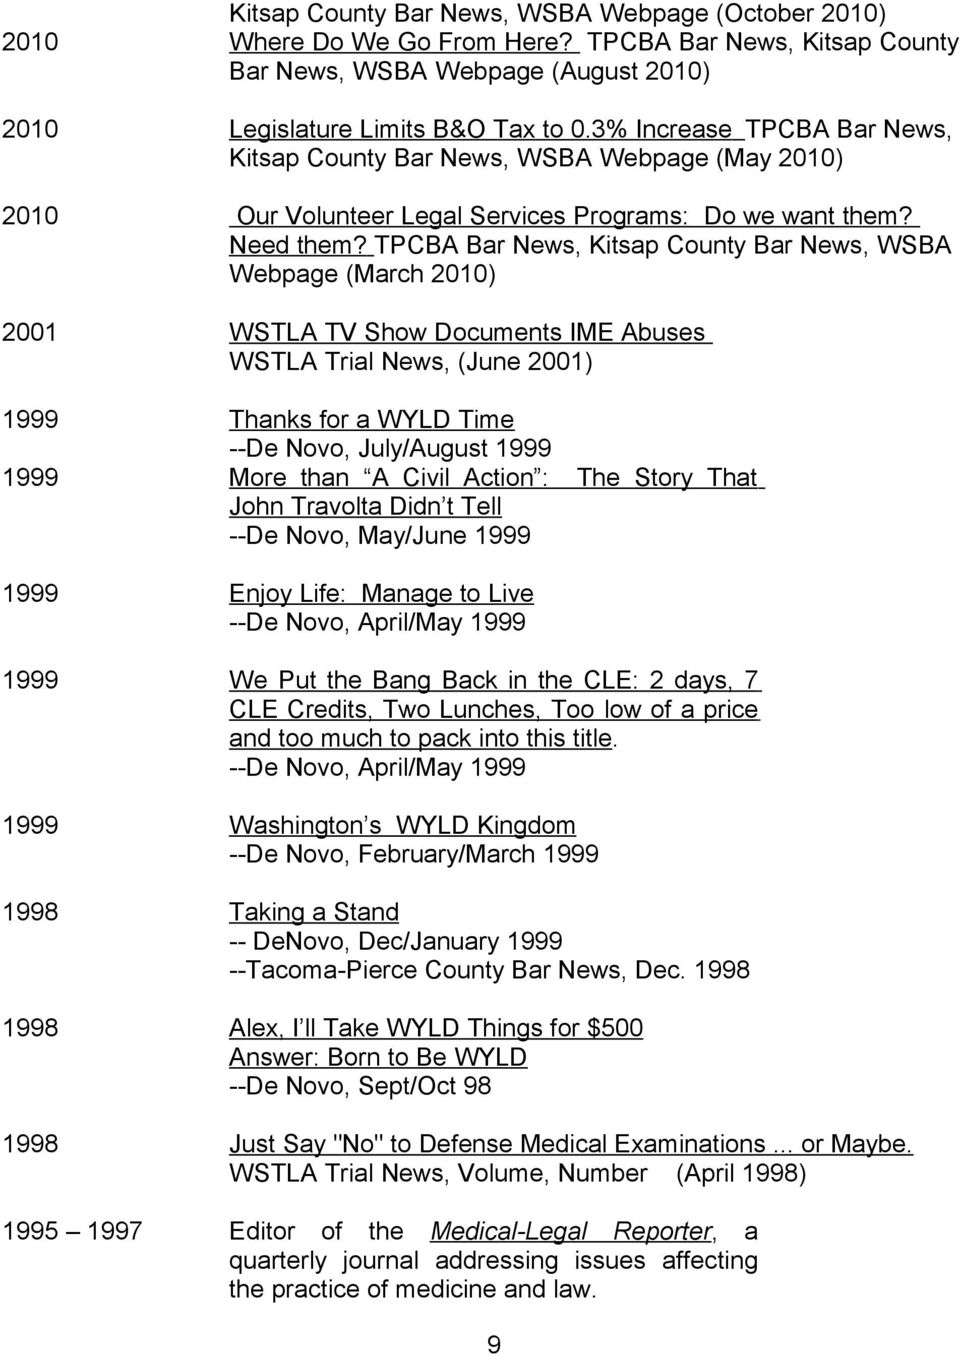 TPCBA Bar News, Kitsap County Bar News, WSBA Webpage (March 2010) 2001 WSTLA TV Show Documents IME Abuses WSTLA Trial News, (June 2001) 1999 Thanks for a WYLD Time --De Novo, July/August 1999 1999